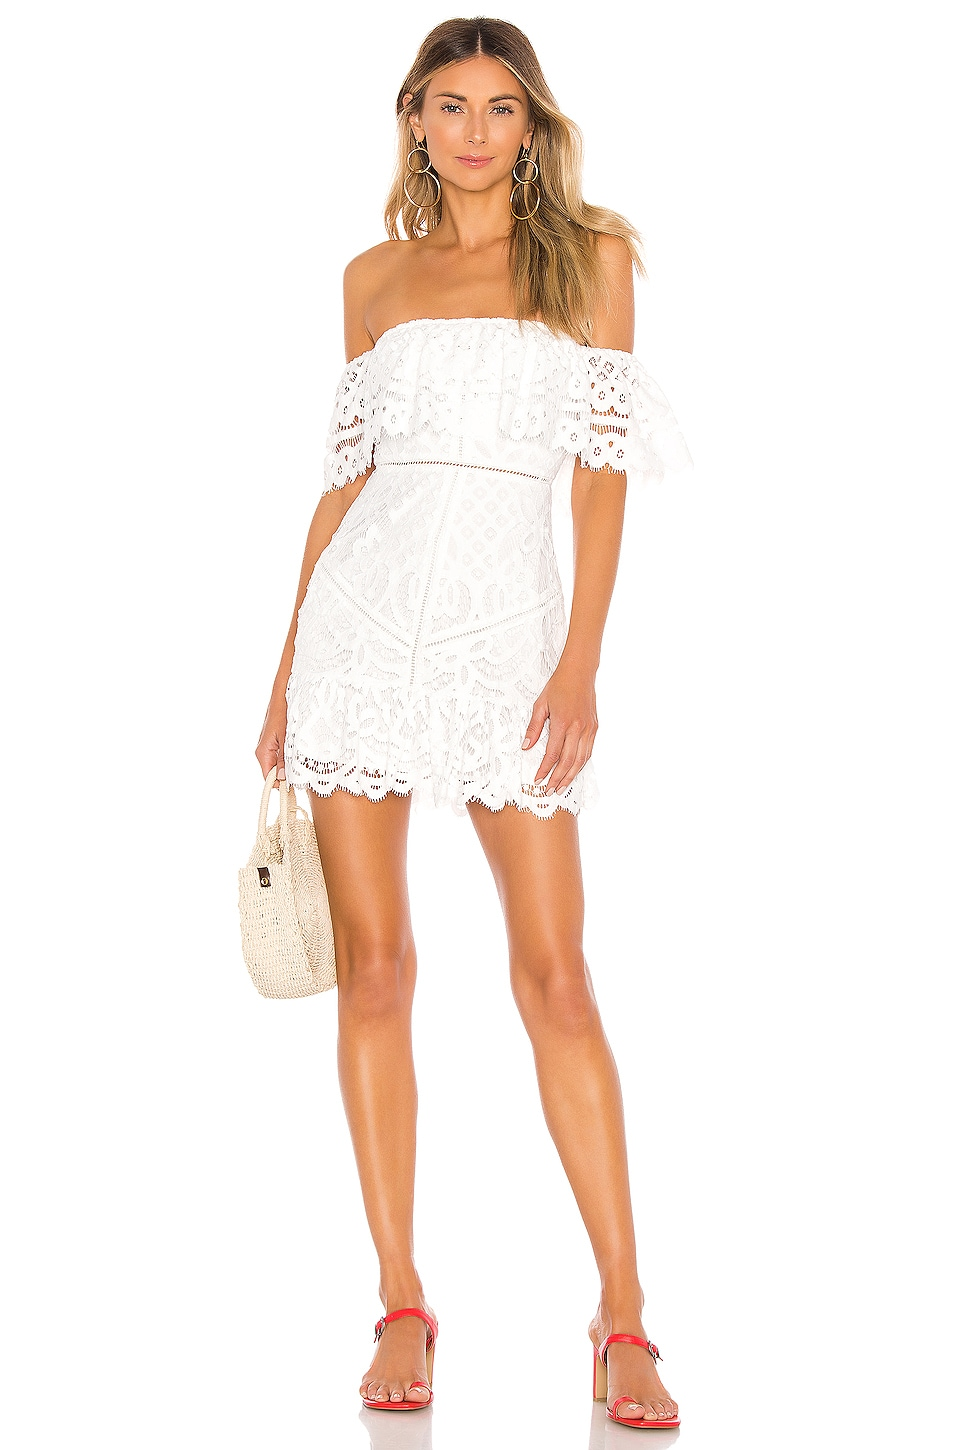 Lovers + Friends Vinnie Mini Dress in White